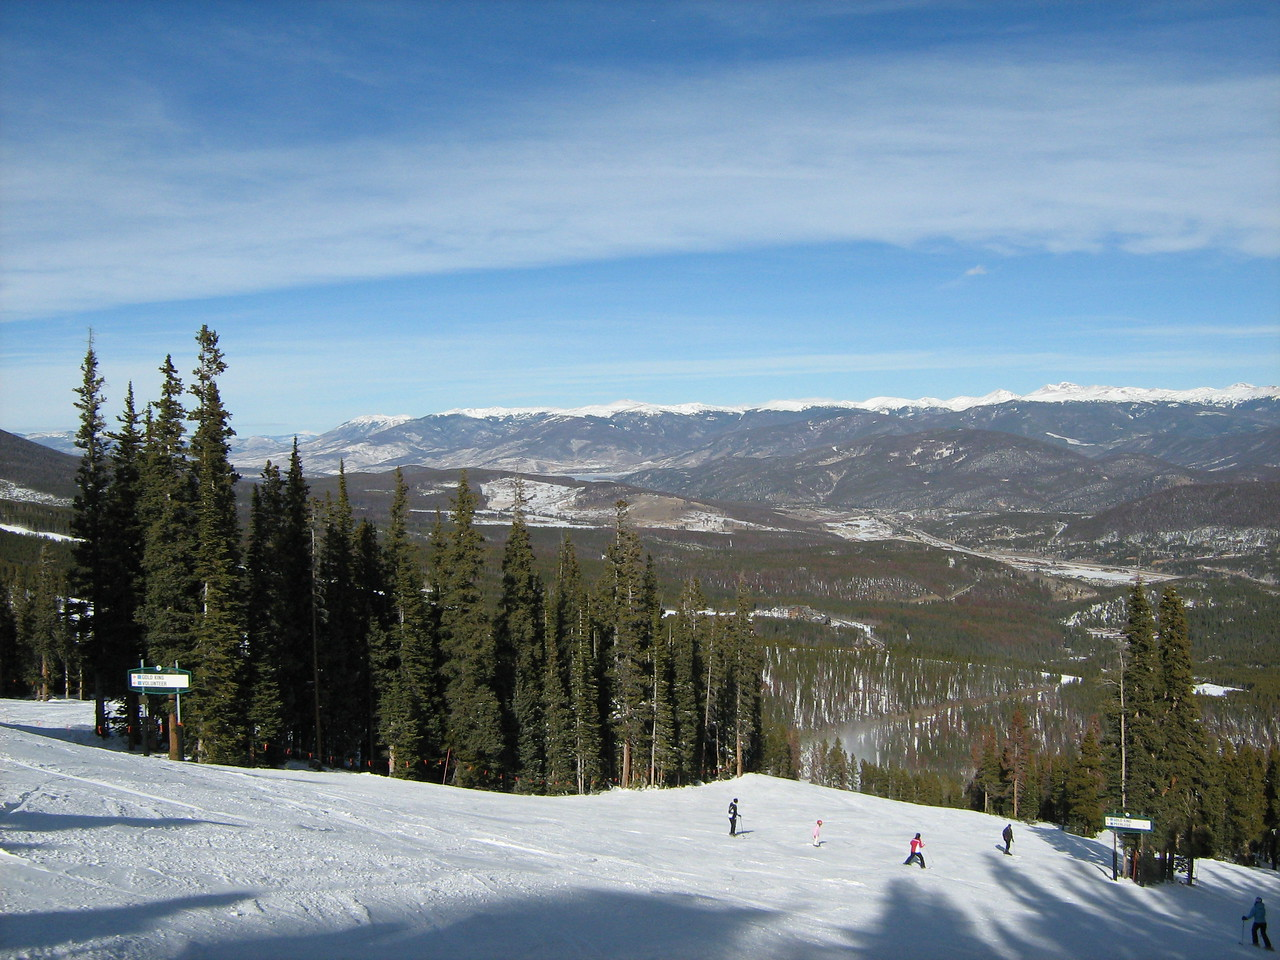 2009 Ski Vacation - Breckenridge 12-21-2009 3-20-57 PM